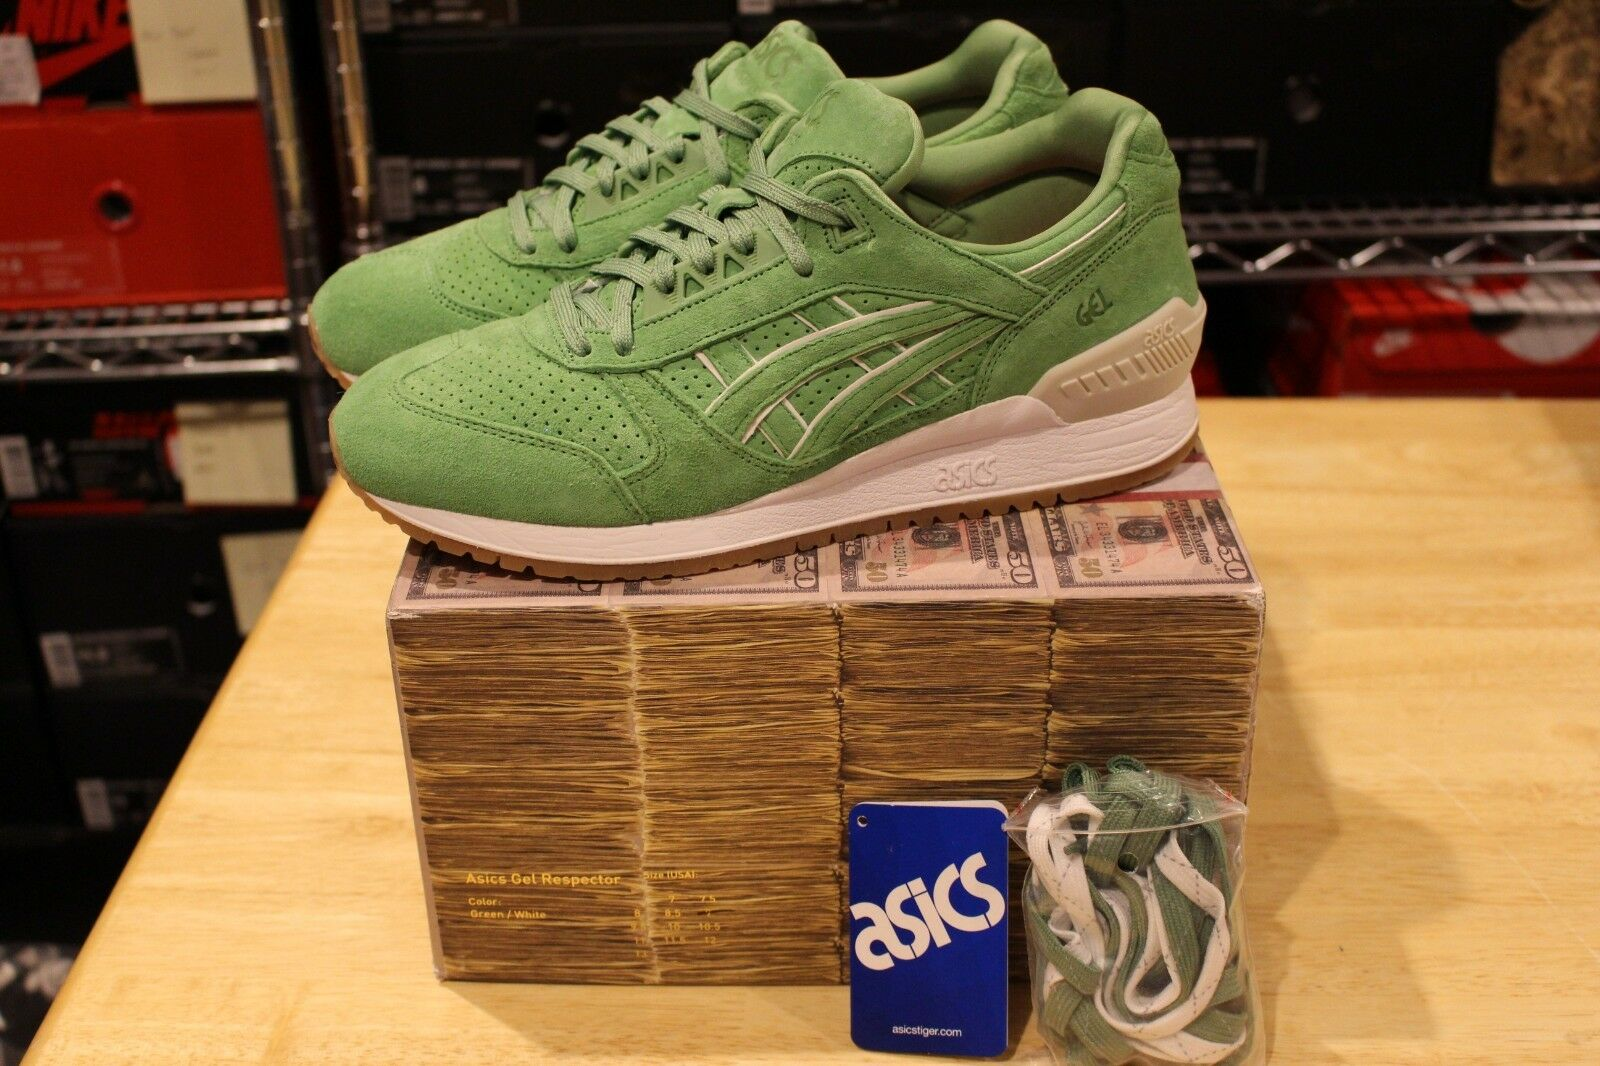 ASICS Gel Respector Concepts Coca Money Box Size 9 Green White Gum Lyte III 3